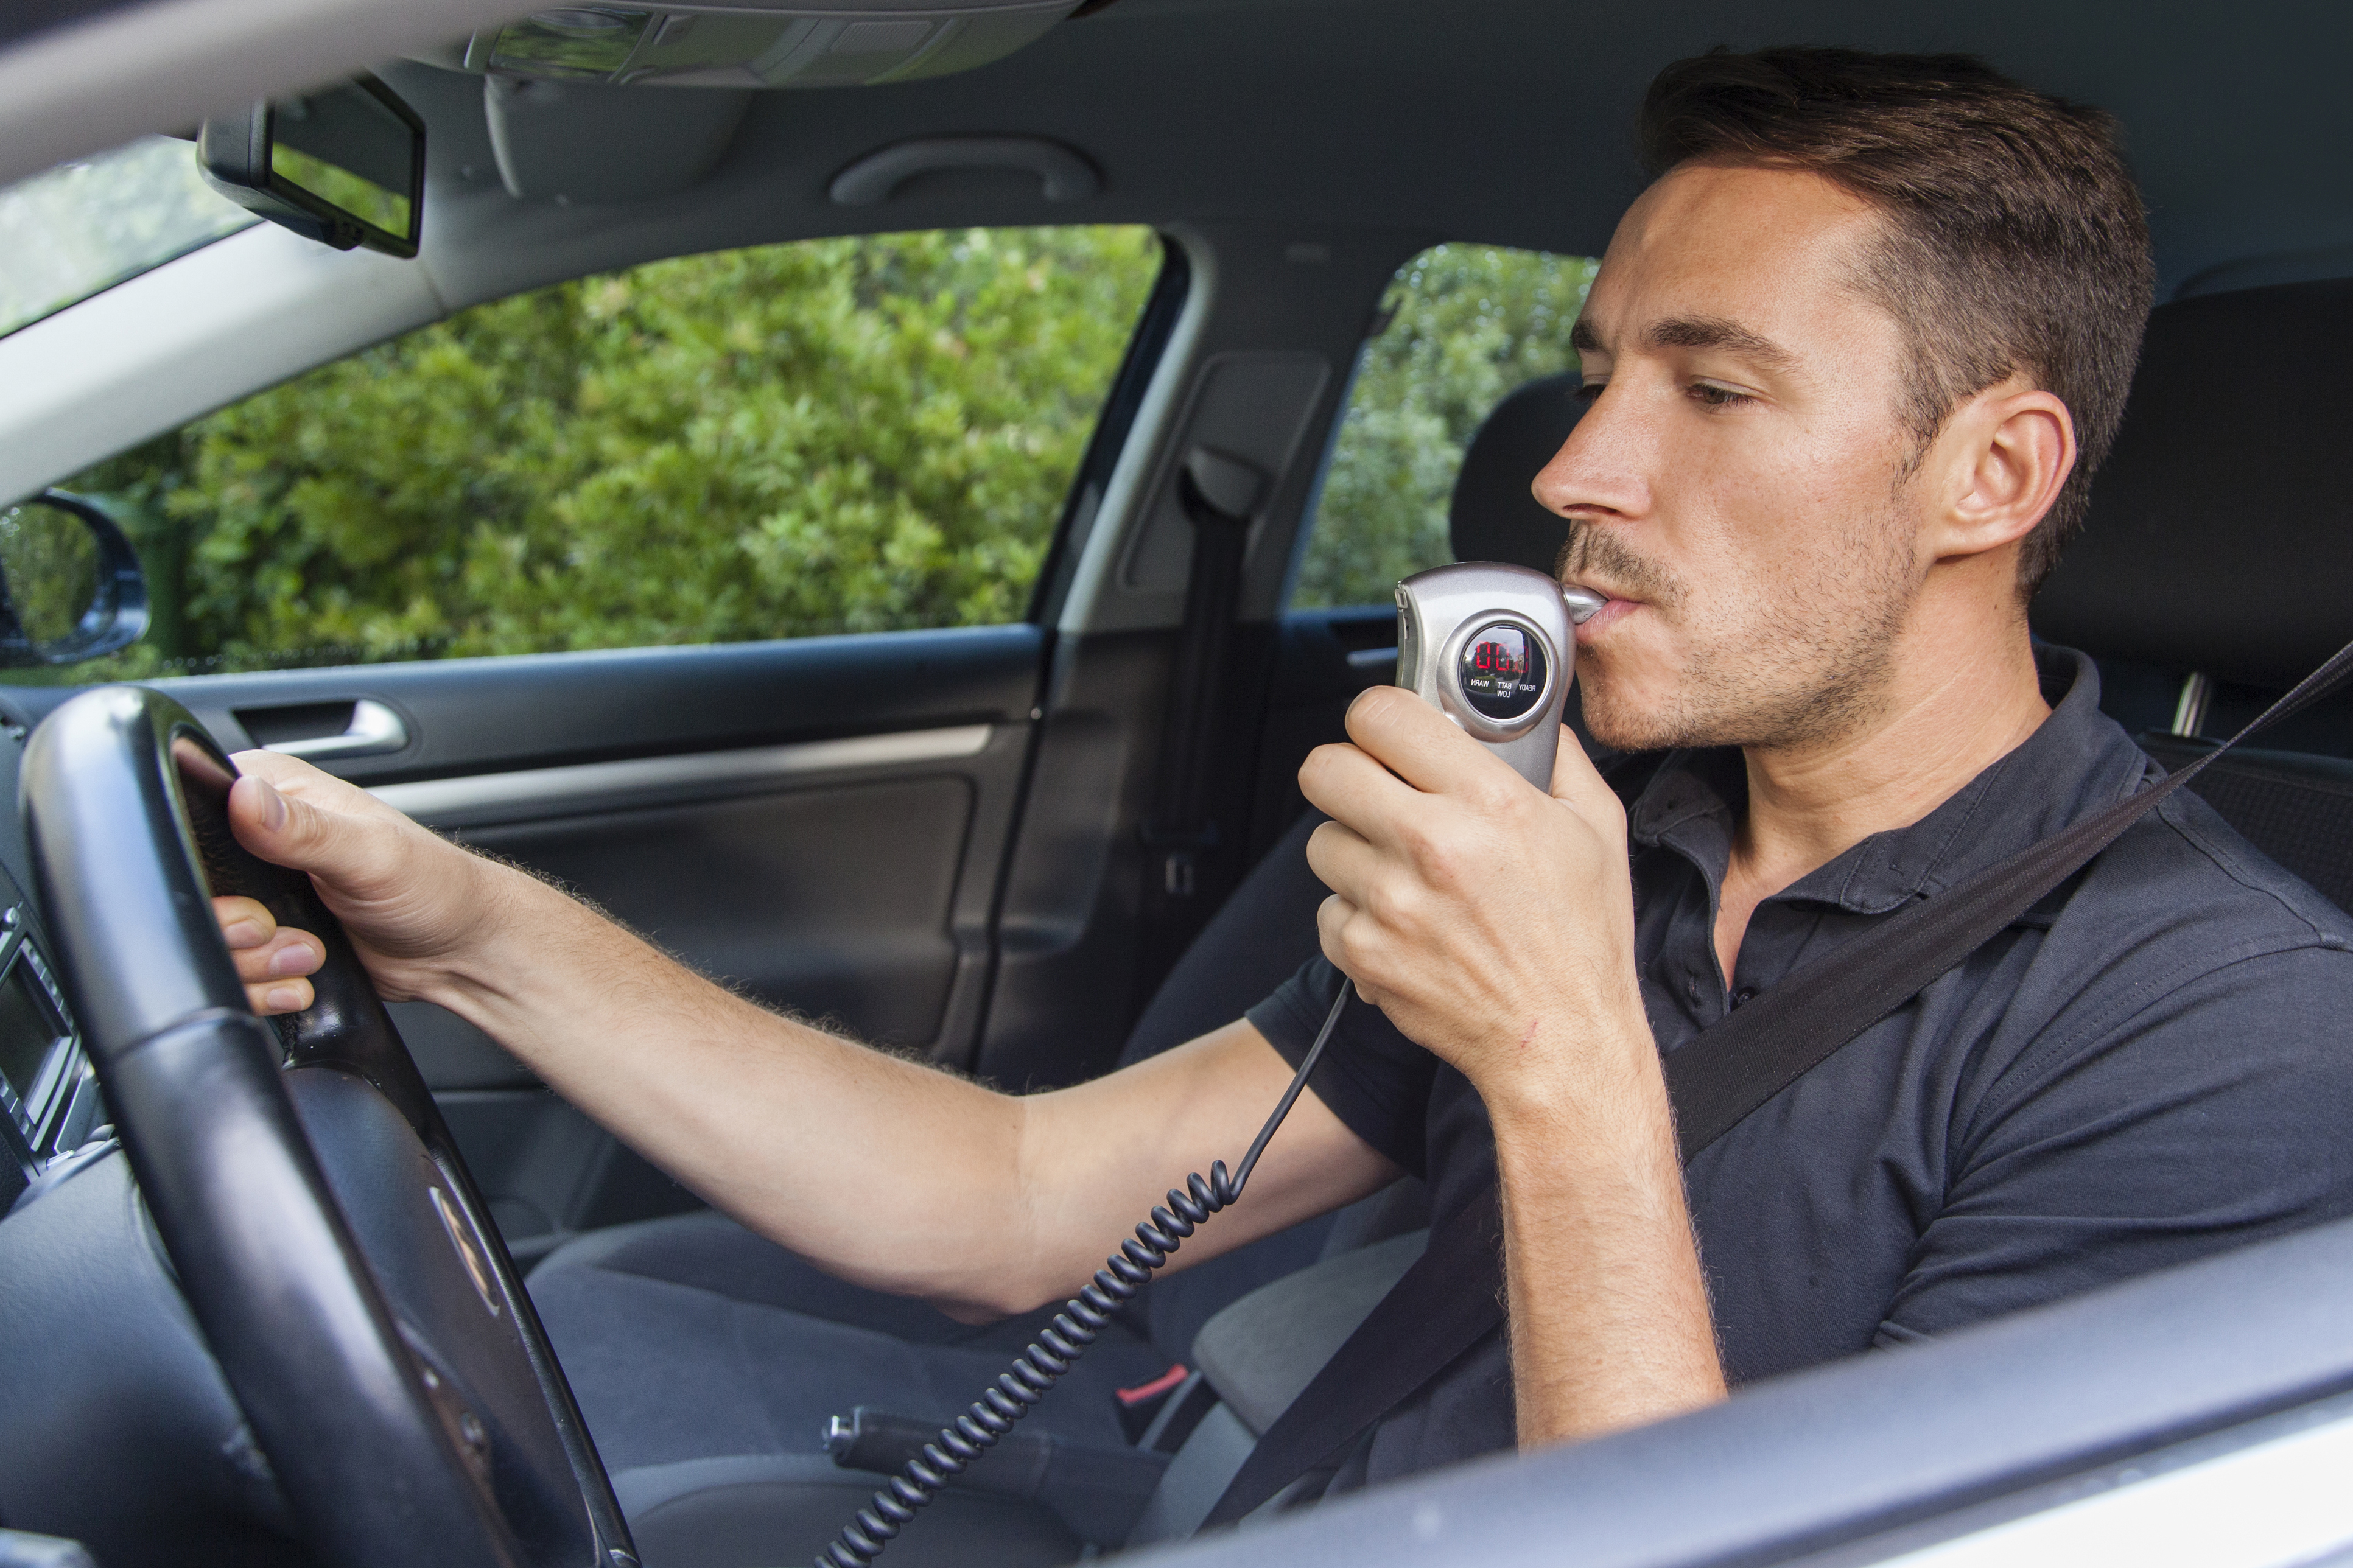 Marijuana DUI Possible with this New Breathalyzer Device